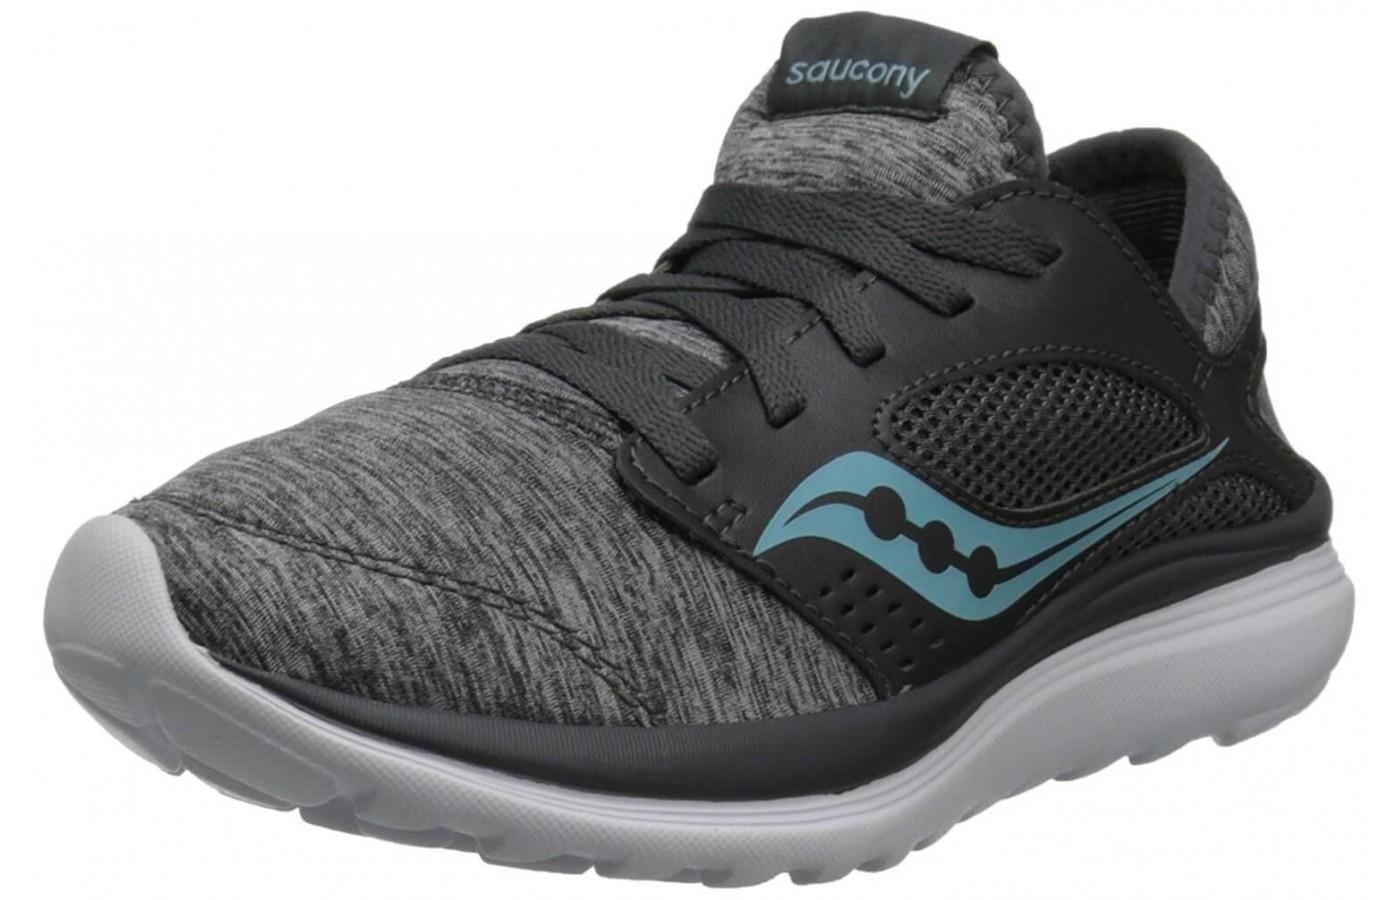 Saucony Kineta Relay is very lightweight